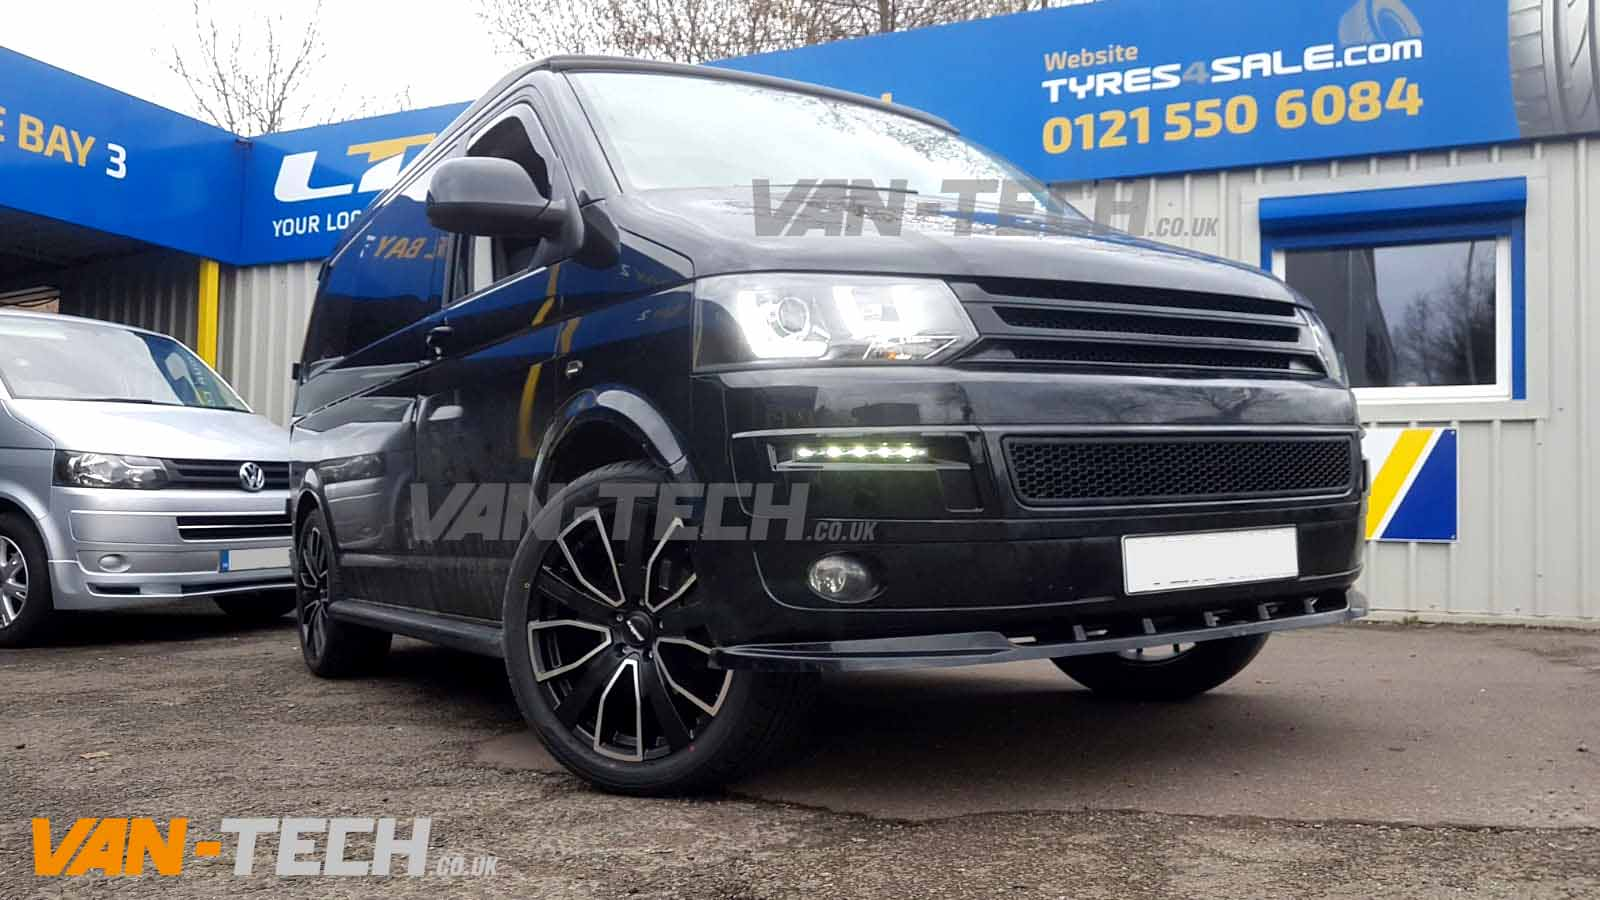 Vw T5 1 Fitted With Alloy Wheels And Light Bar Headlights